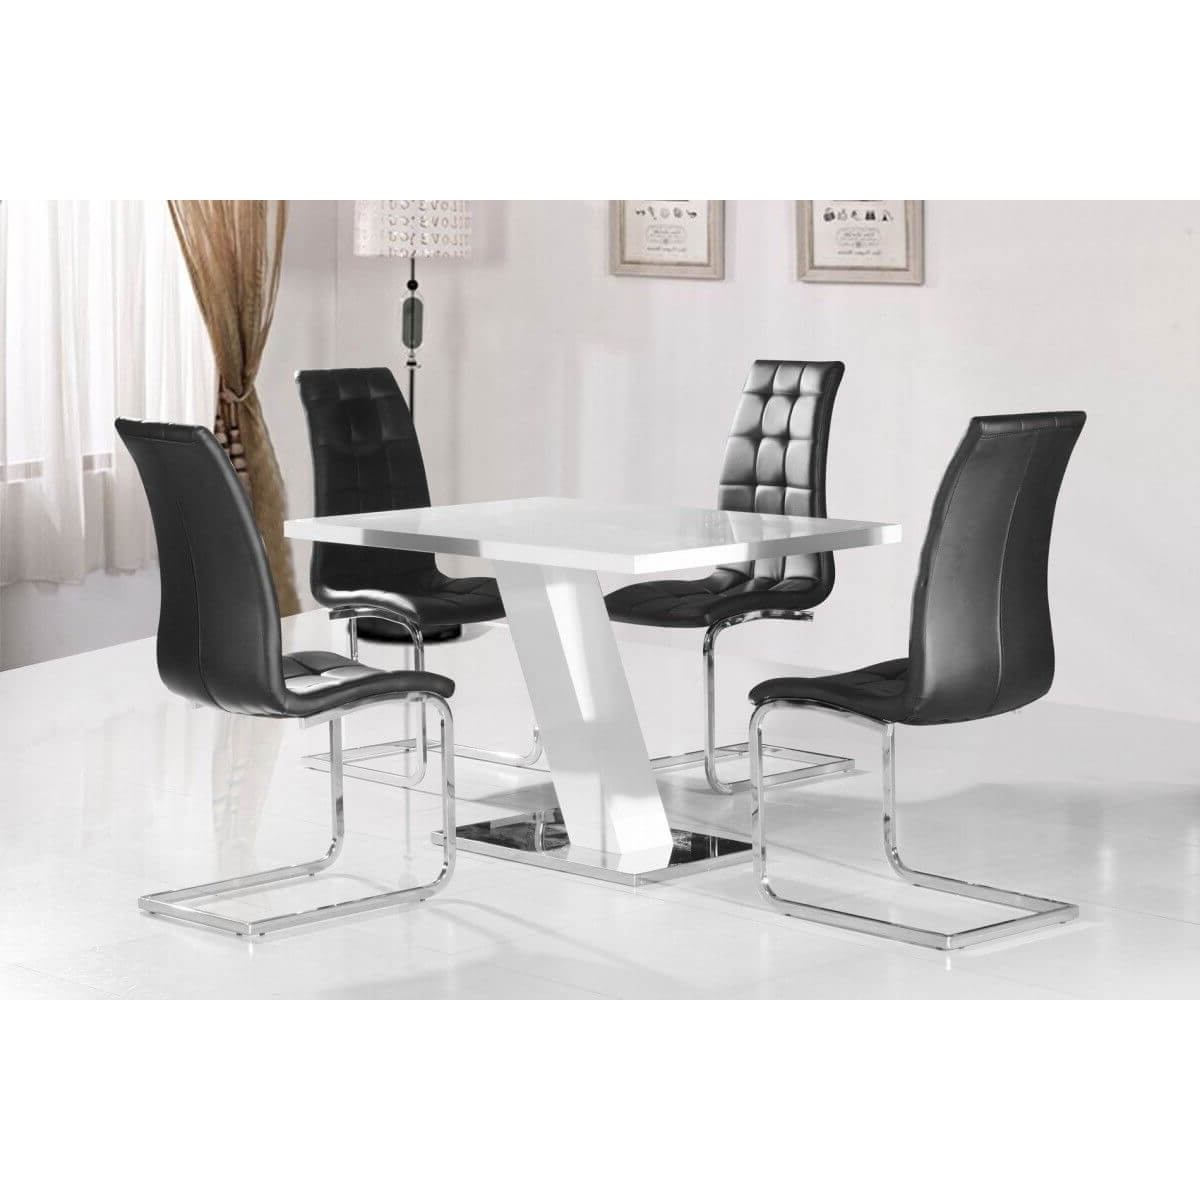 Trendy White High Gloss Dining Tables And Chairs For Arizona White High Gloss Dining Set (View 18 of 25)